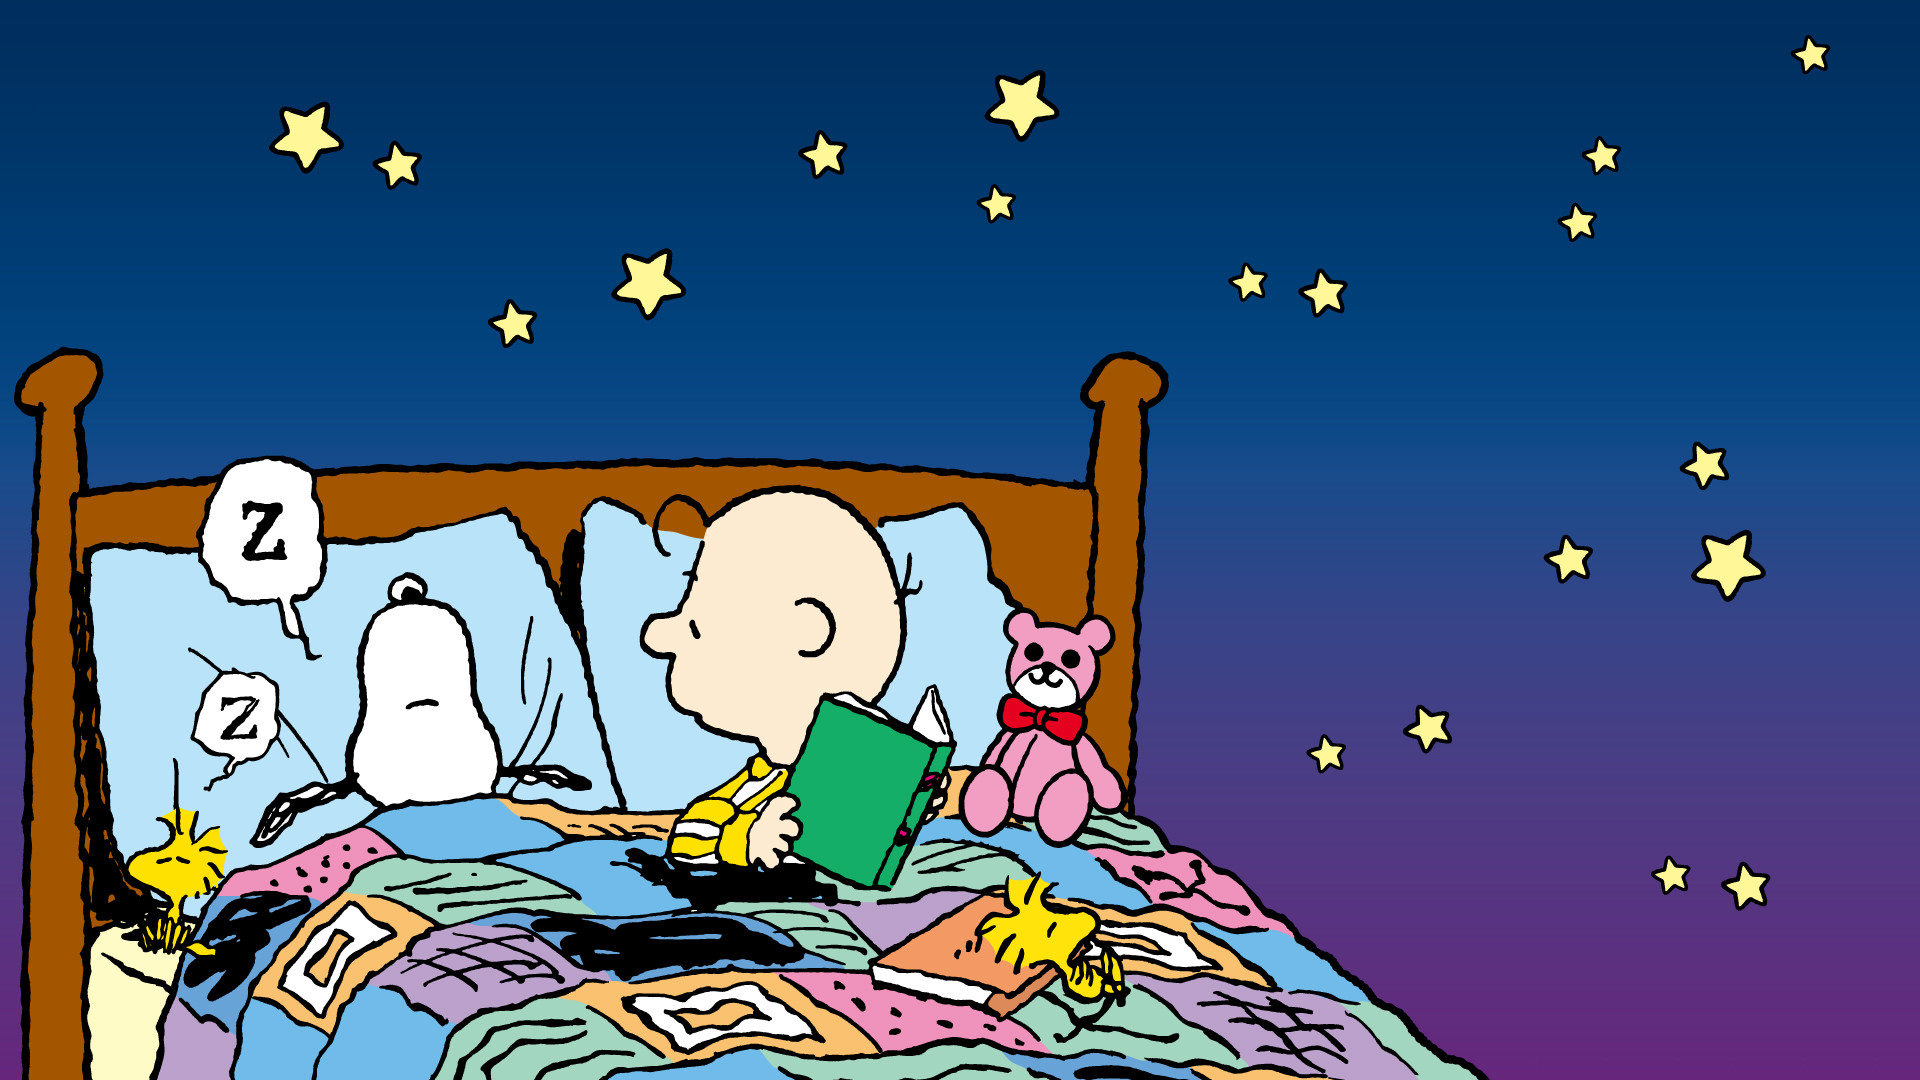 Snoopy And Woodstock Wallpapers – Wallpaper Zone